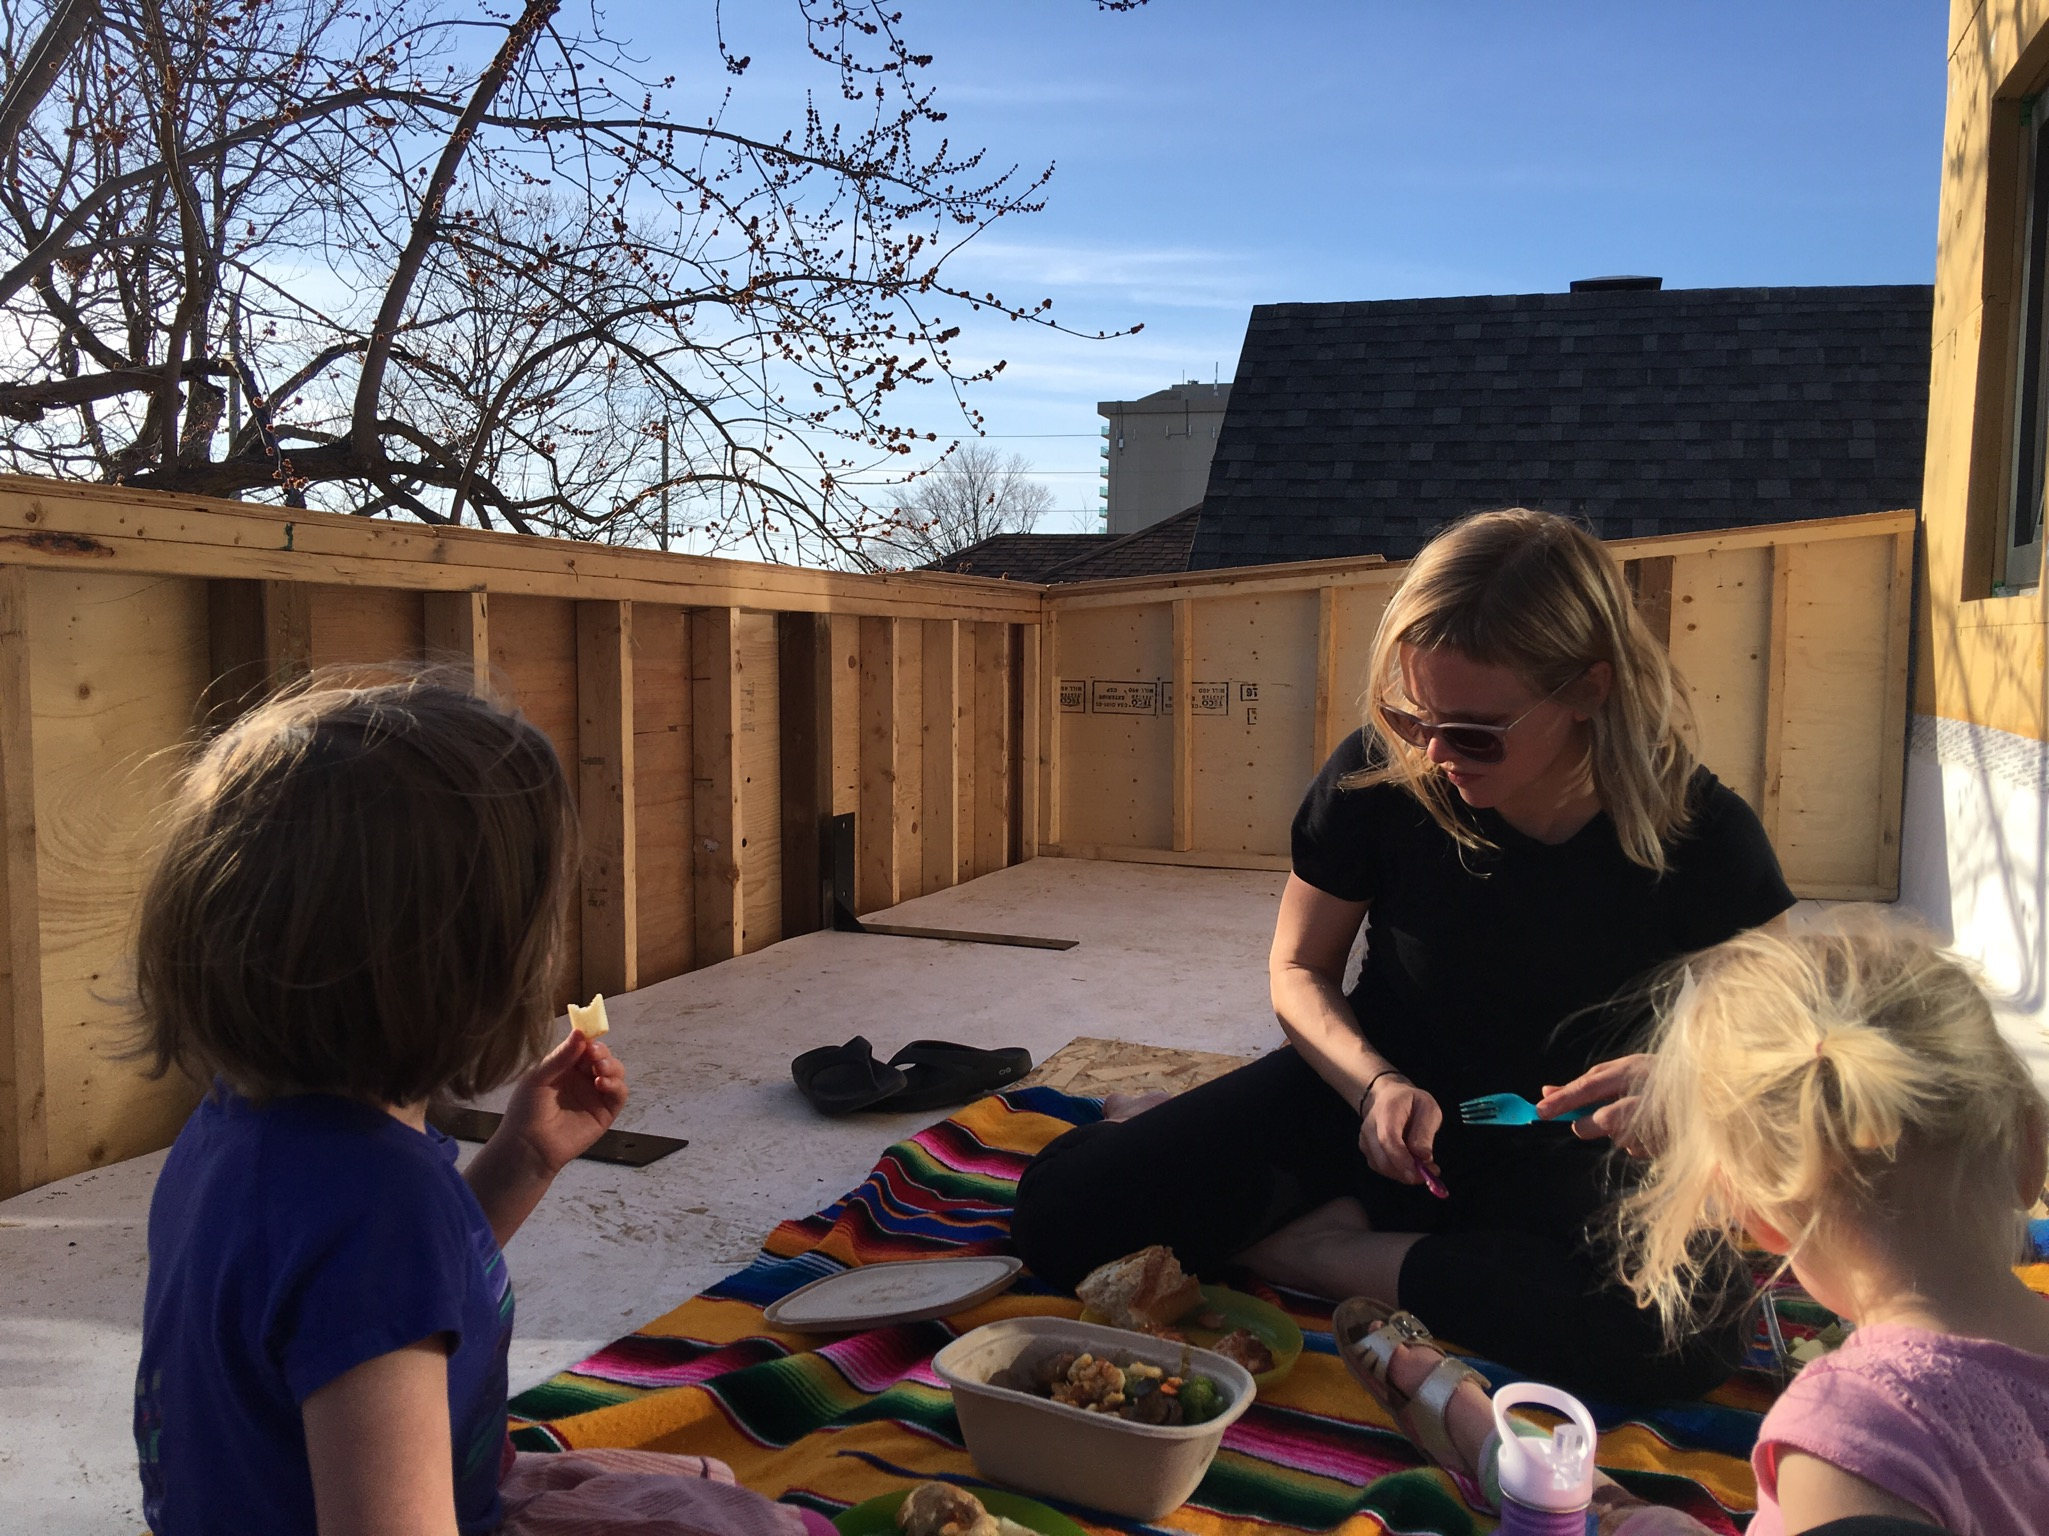 First family picnic on our rooftop patio. Shared it with some friendly pigeons who decided our new home was also their new home.